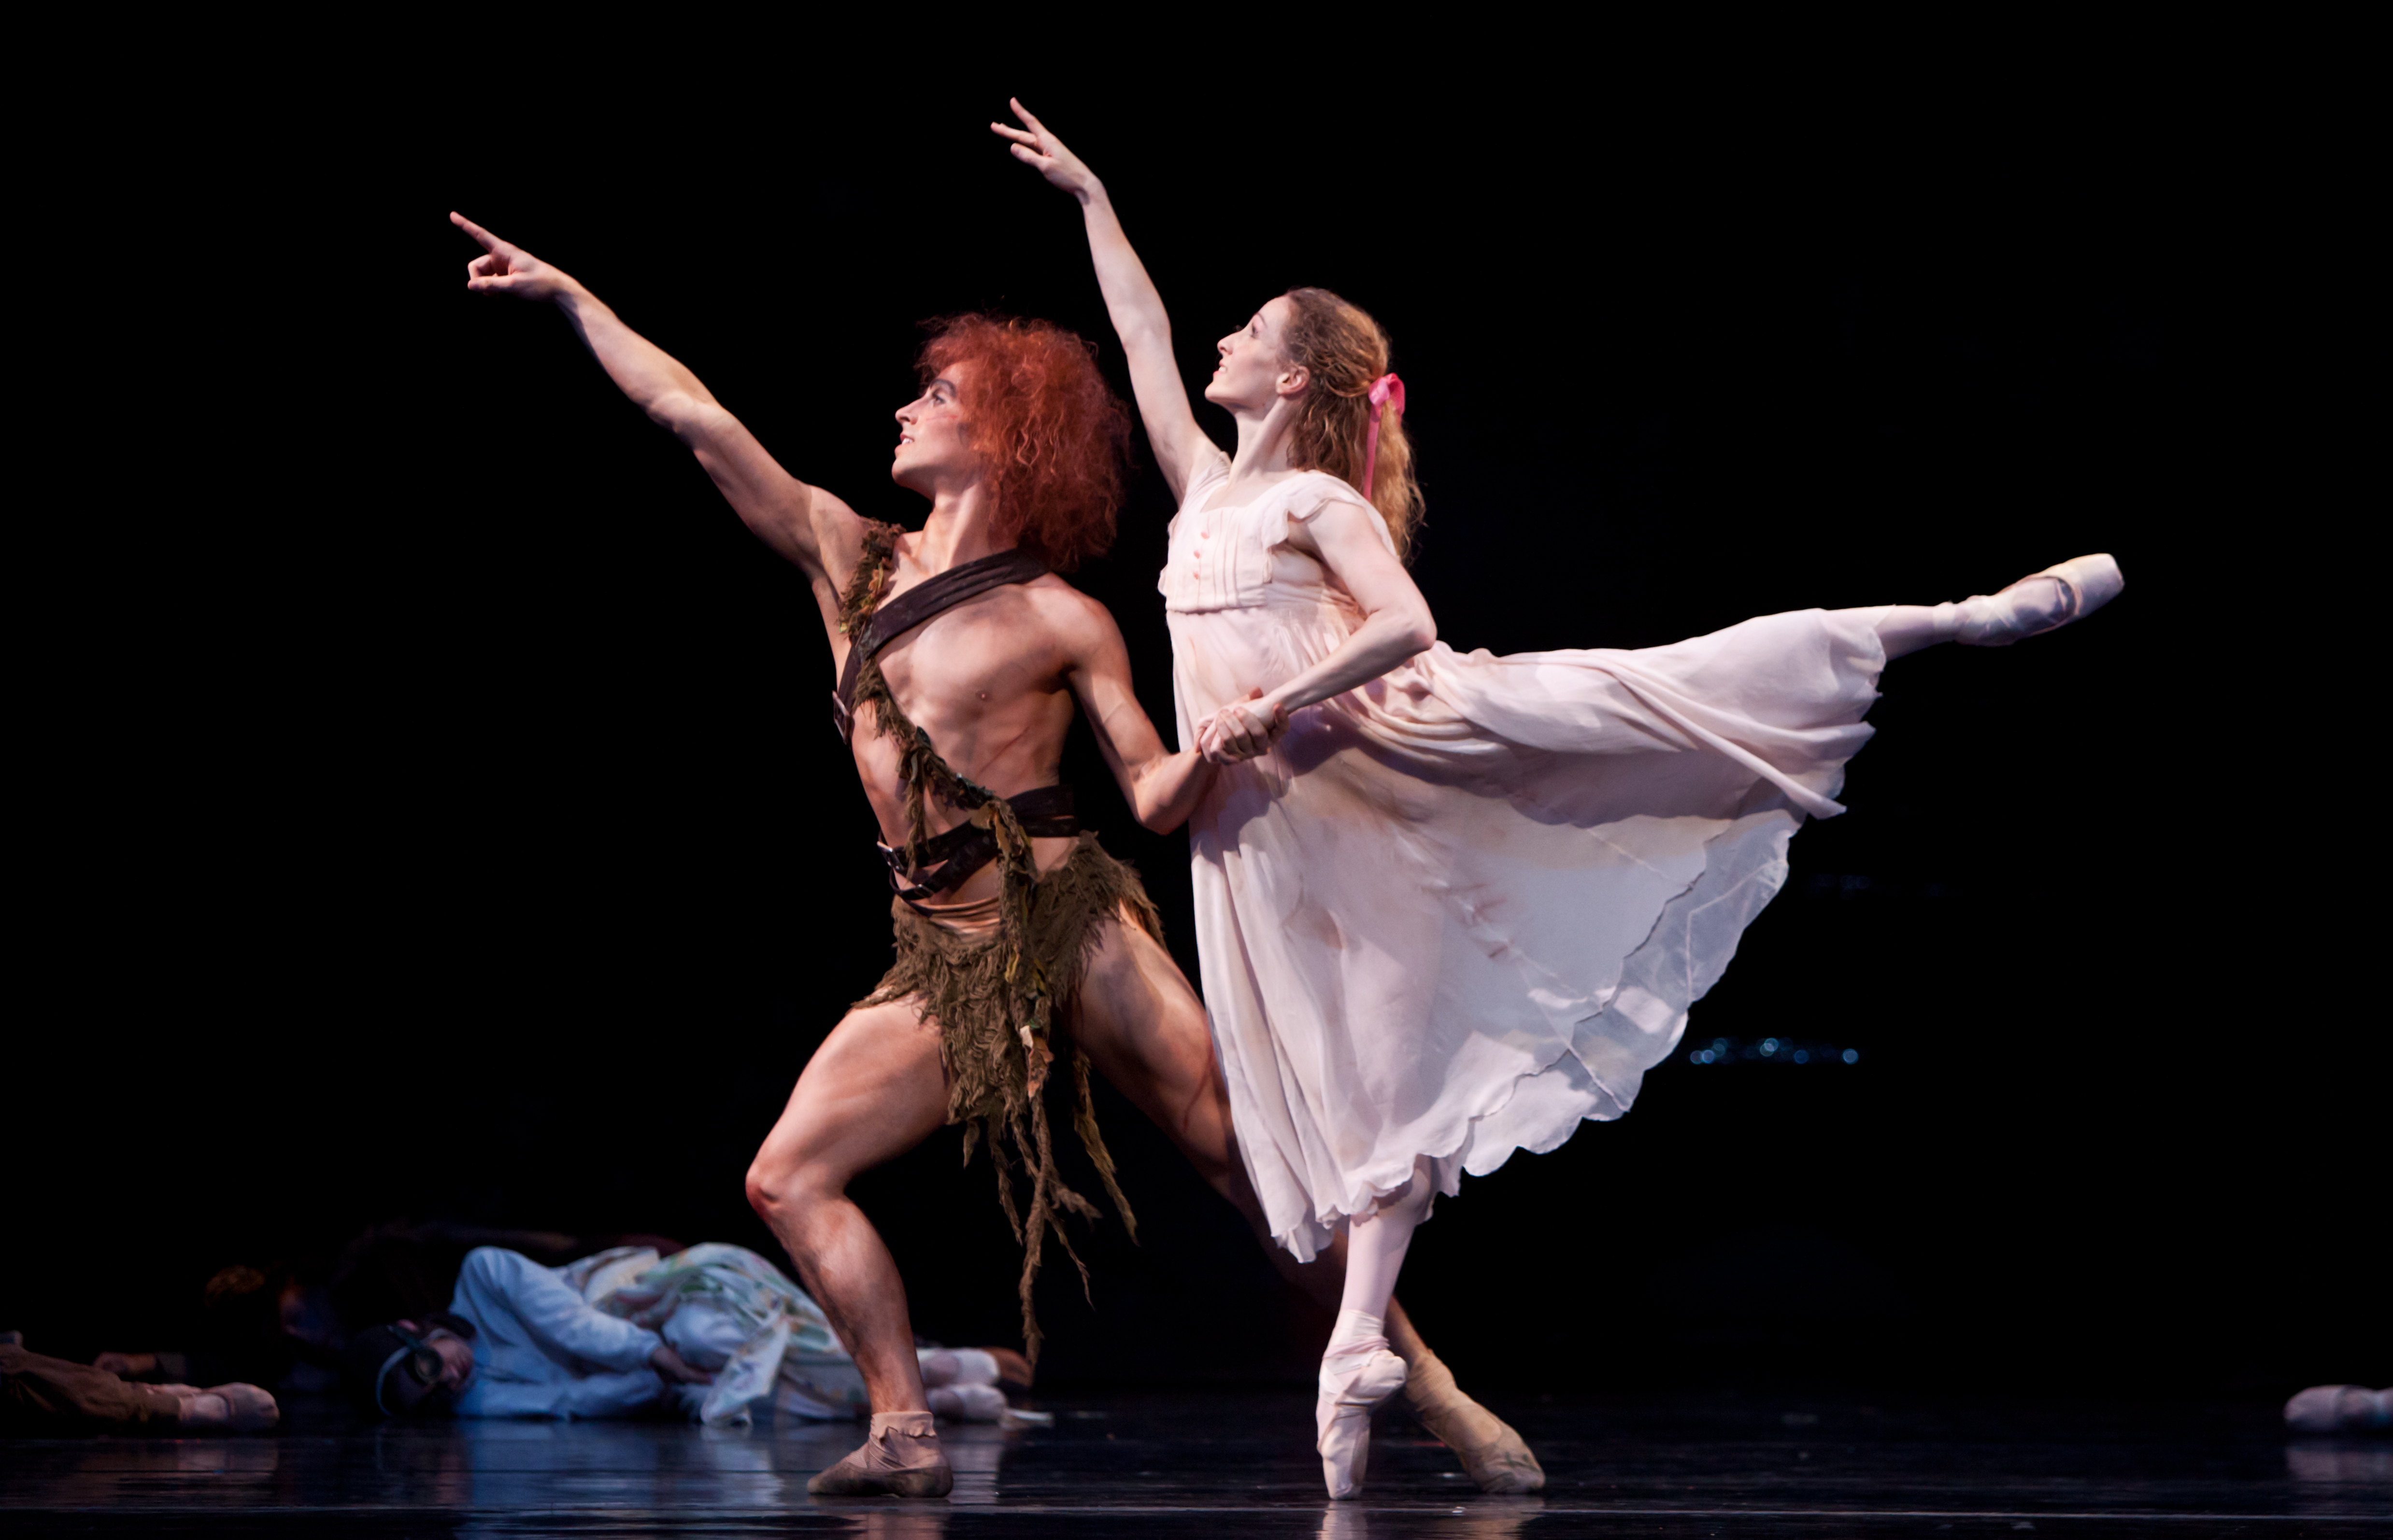 BWW Reviews: Houston Ballet's PETER PAN is a Whimsical Good Time